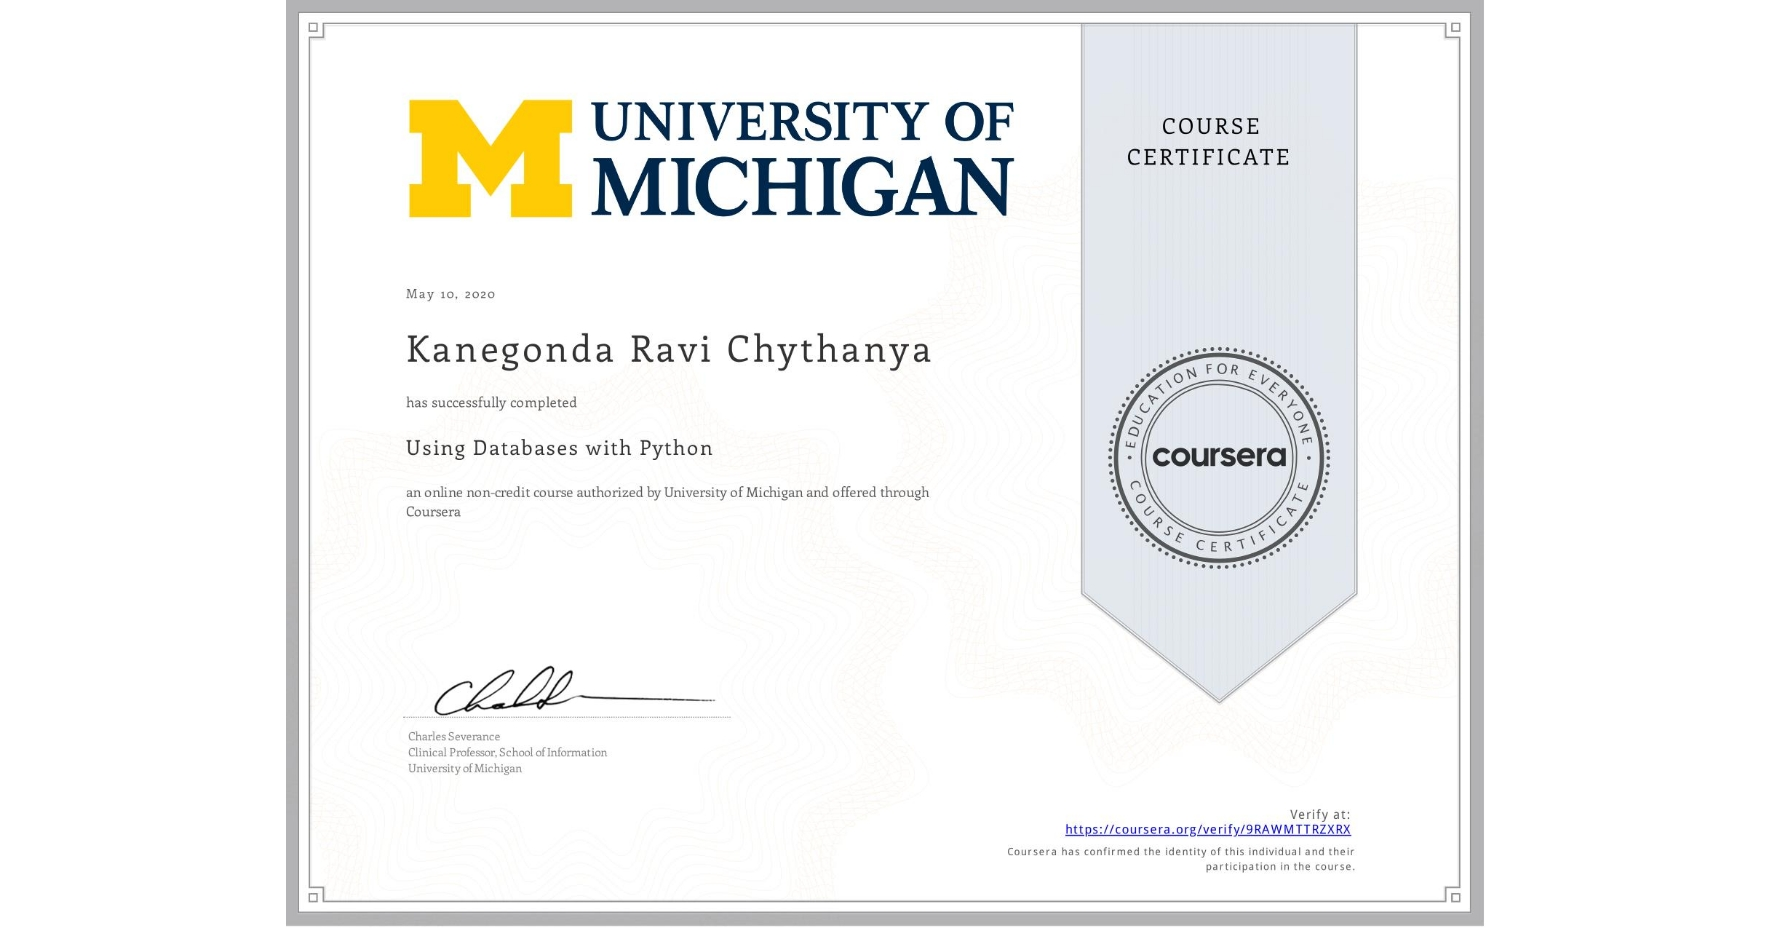 View certificate for Kanegonda Ravi Chythanya, Using Databases with Python, an online non-credit course authorized by University of Michigan and offered through Coursera